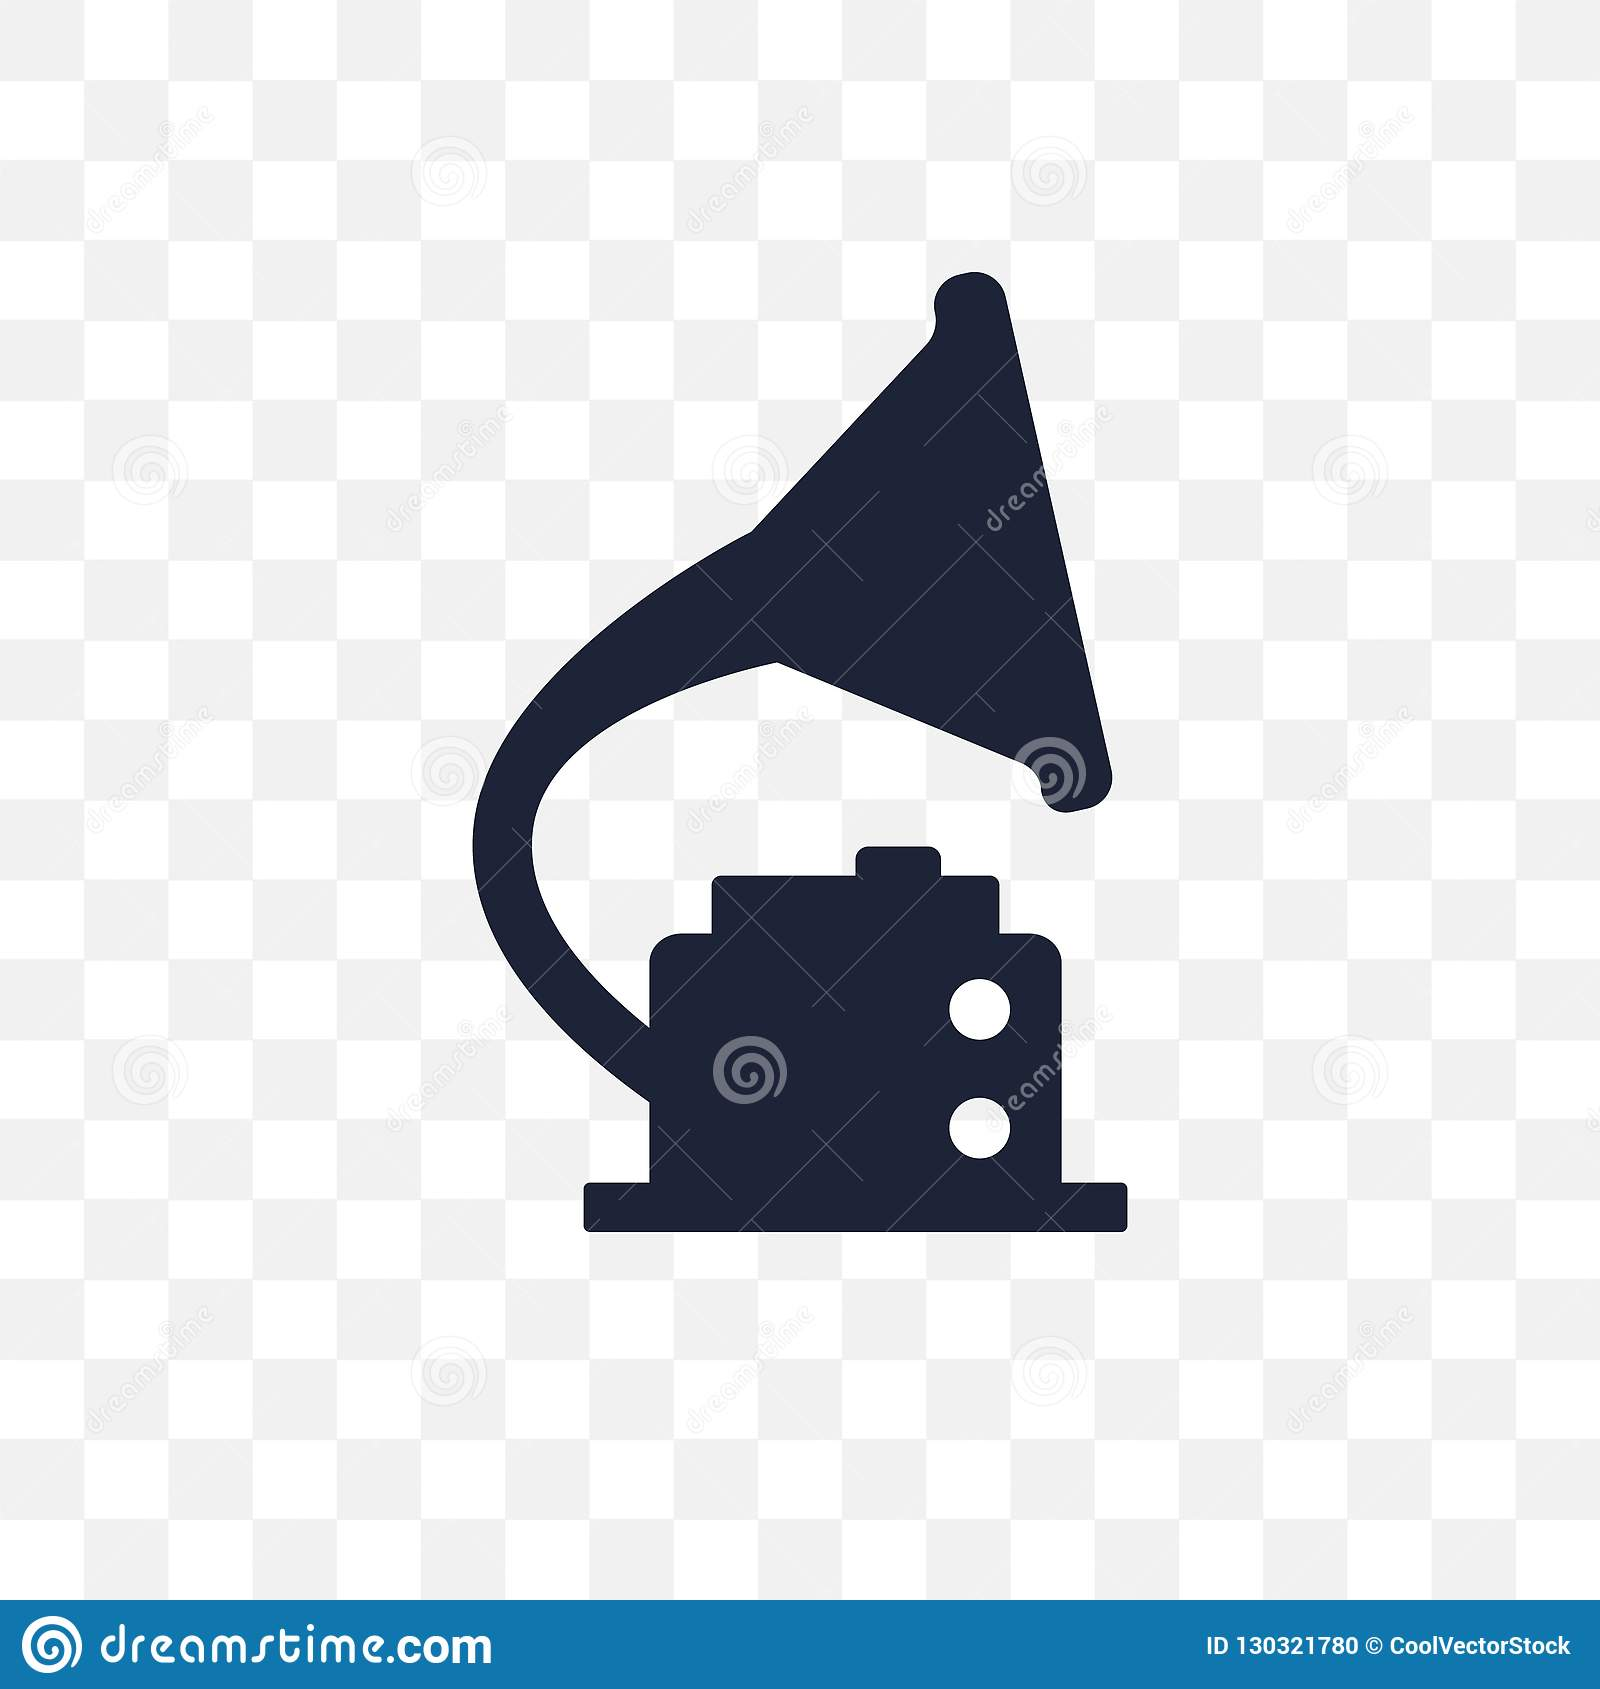 gramophone transparent icon gramophone symbol design from museum collection stock vector illustration of phonograph instrument 130321780 https www dreamstime com gramophone transparent icon symbol design museu museum collection simple element vector illustration background image130321780